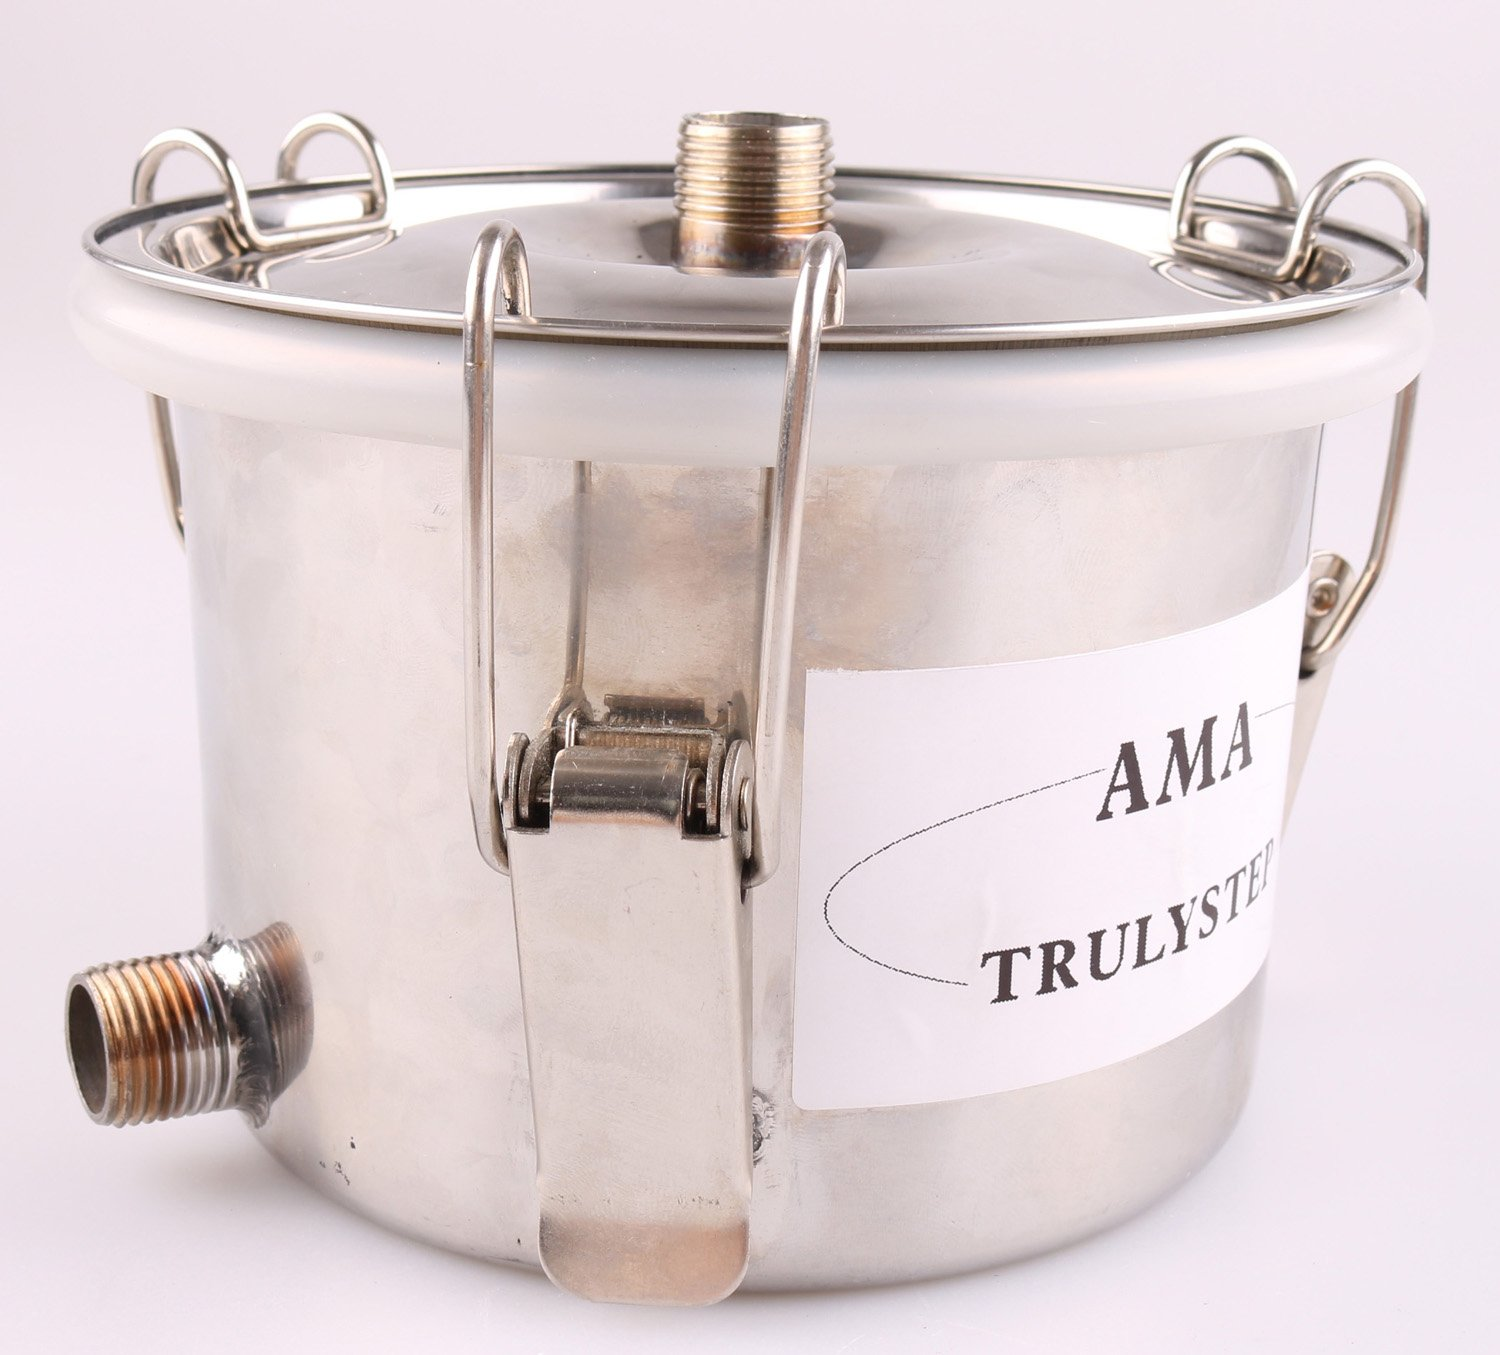 Spare Parts for 3 Pots Moonshine Still/Distiller/Brewing Kit: Stainless Middle/Spice/Fruit Pot & Bellows Pipes (fit 3 Gallon 12 Litres Distiller)